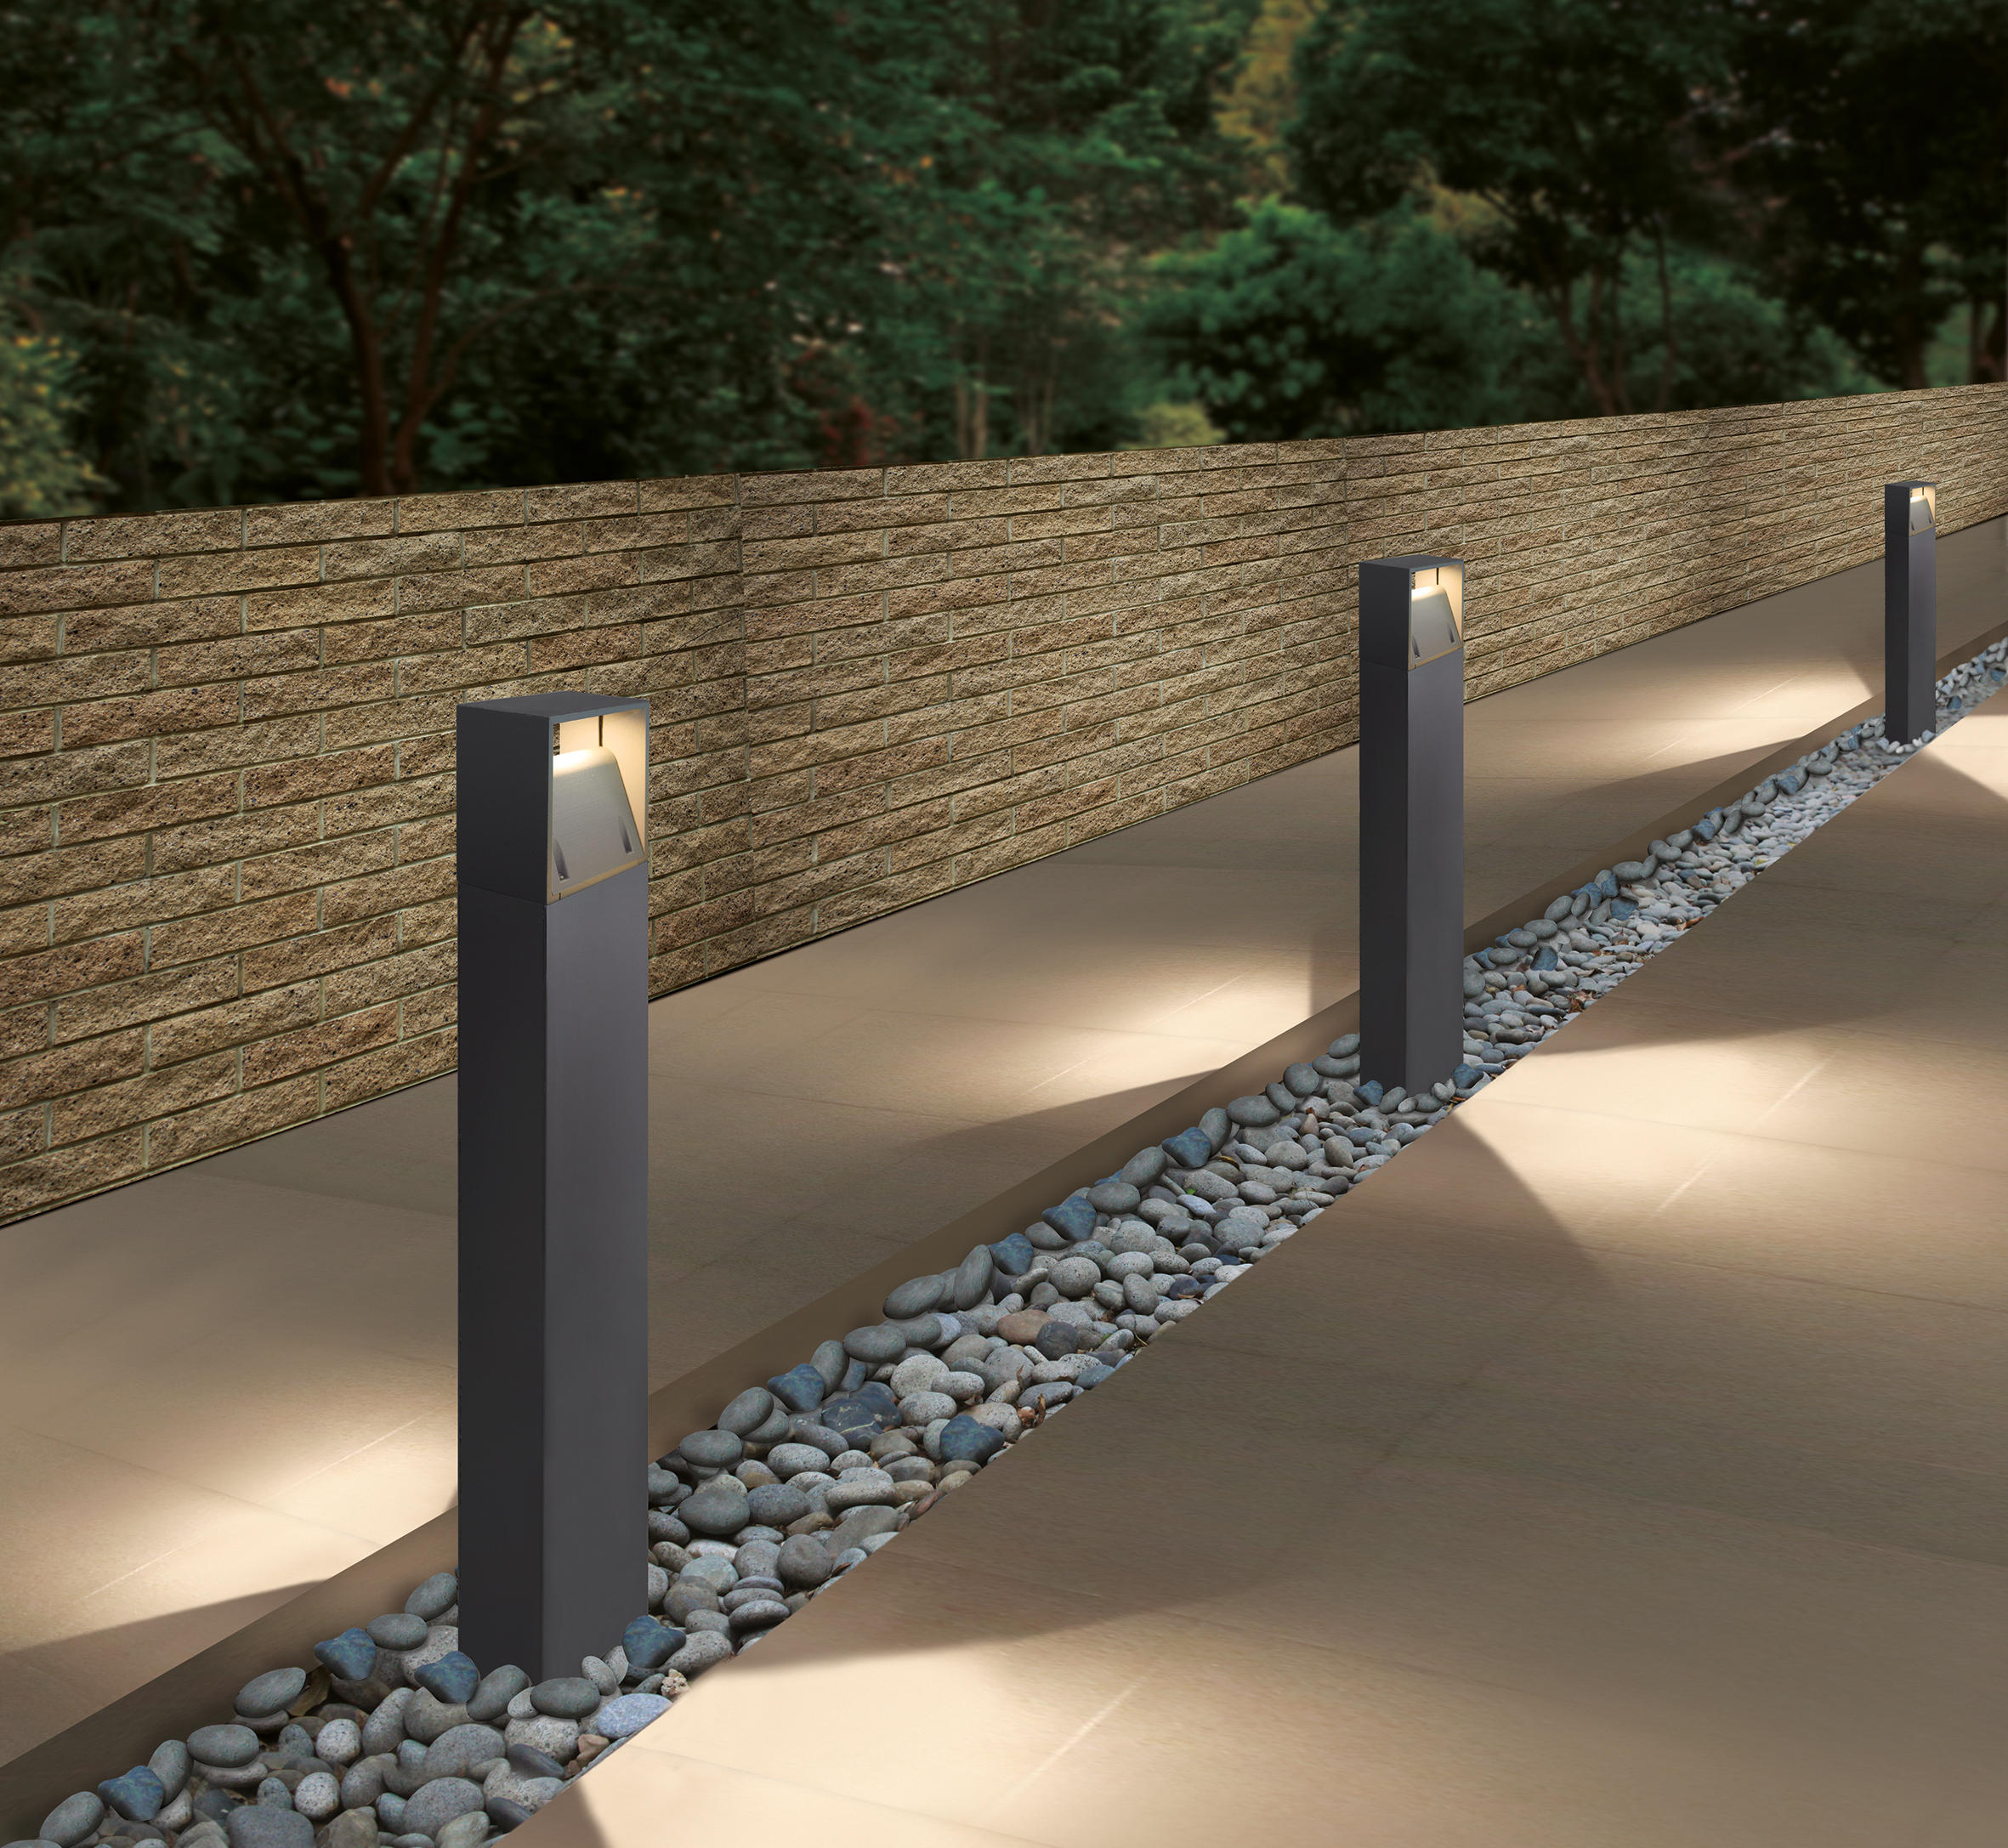 lim led bollard luminaire bollard lights from unex. Black Bedroom Furniture Sets. Home Design Ideas